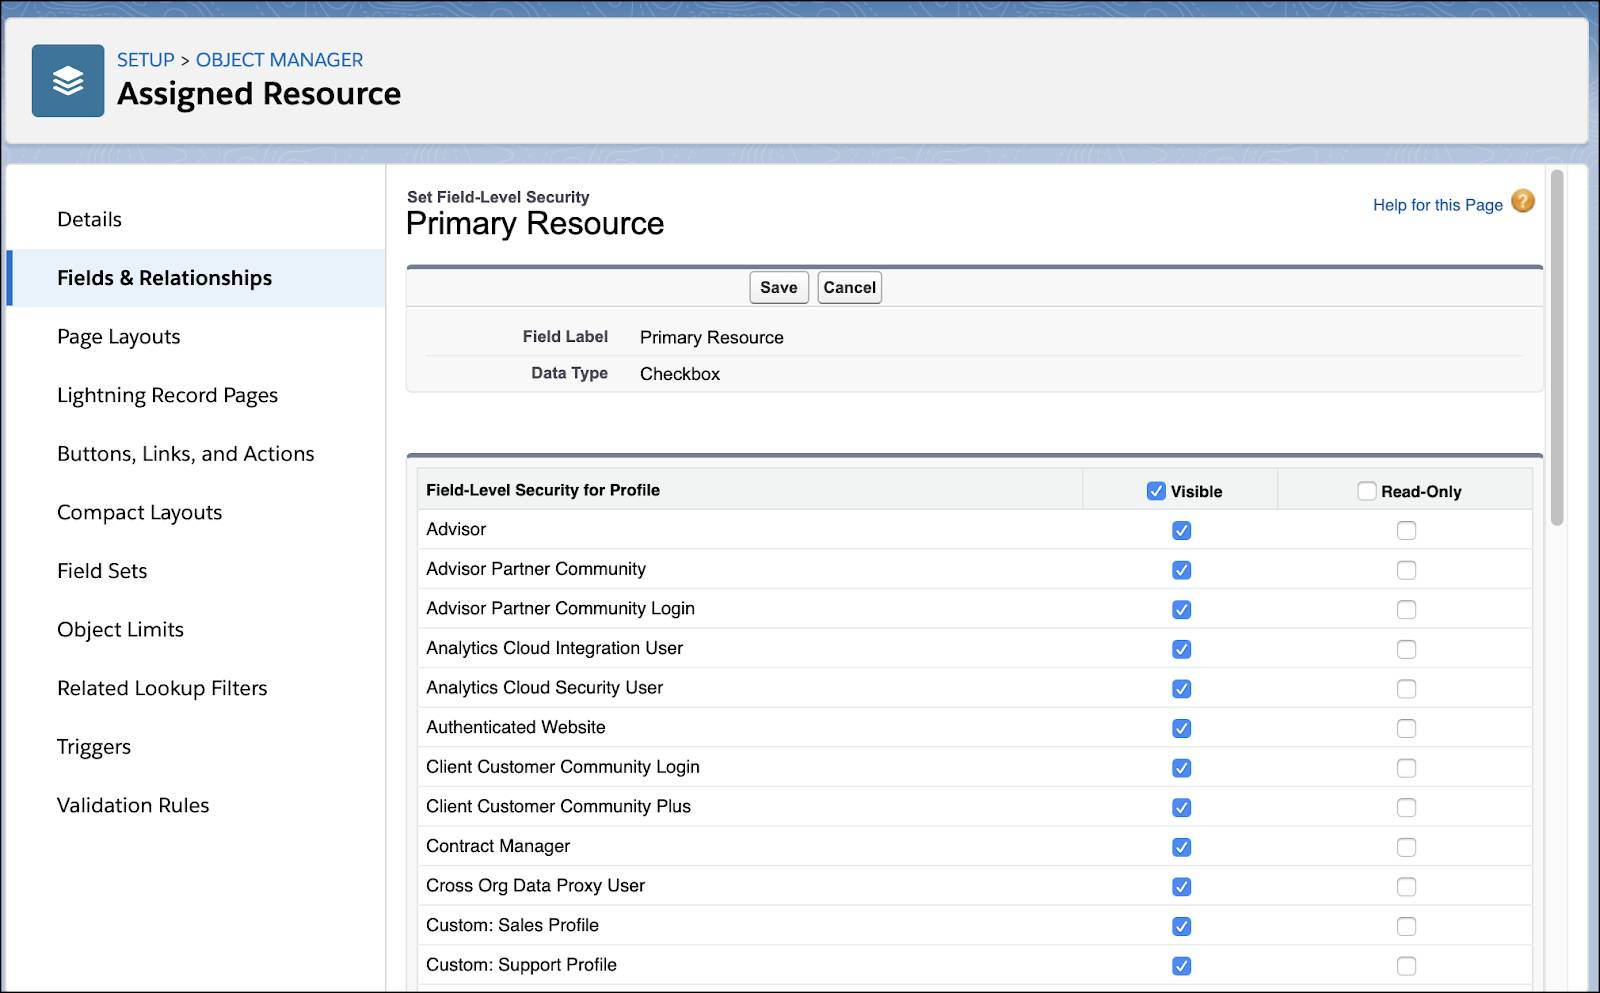 The Primary Resource page with the Visible checkbox selected for all profiles.